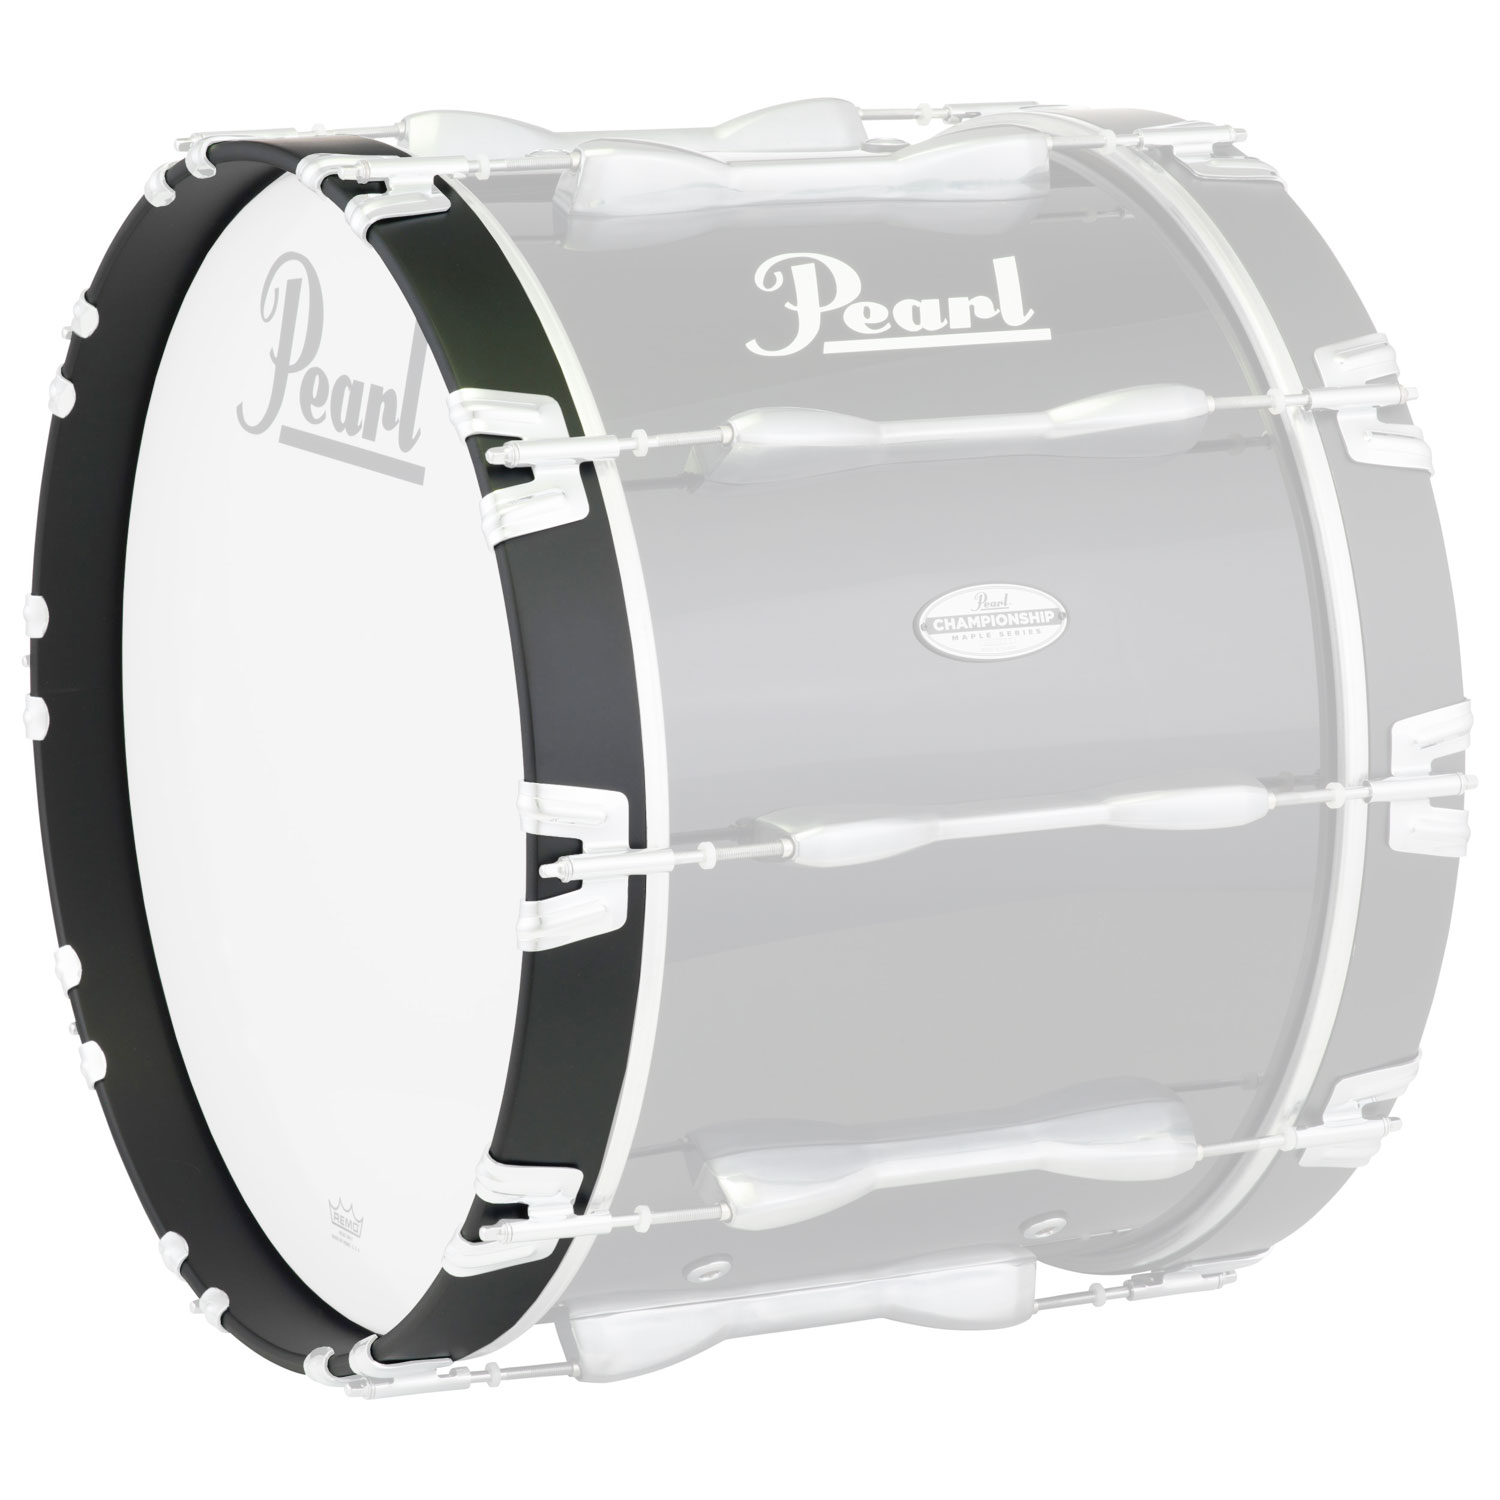 "Pearl 26"" Championship Bass Hoop, Gloss Black, 2"" Wide"